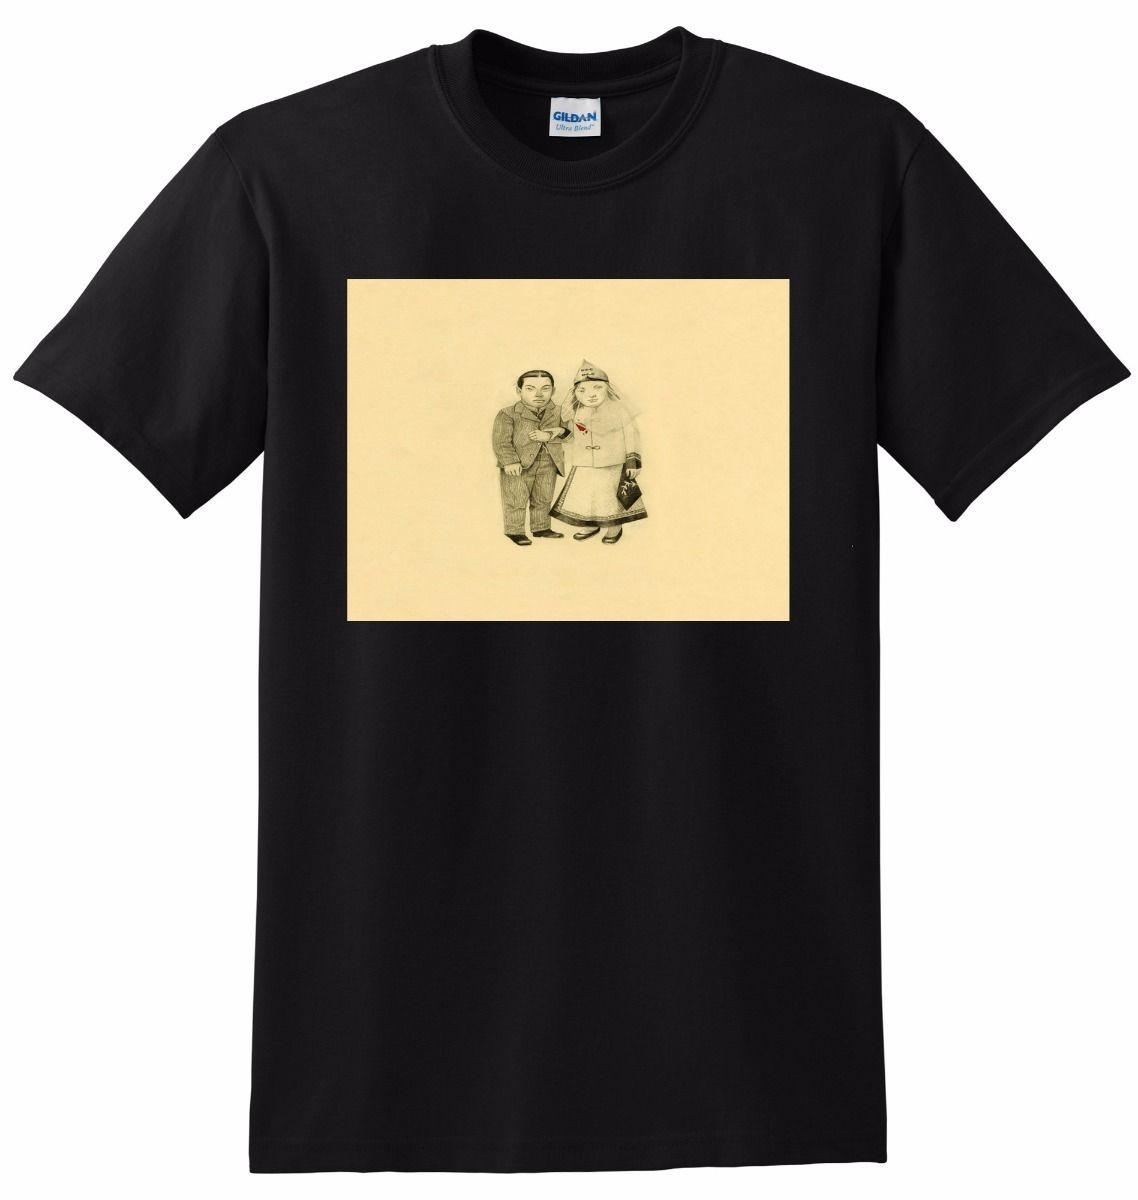 994ffca9 Buy Funky T Shirts Online India - Aztec Stone and Reclamations